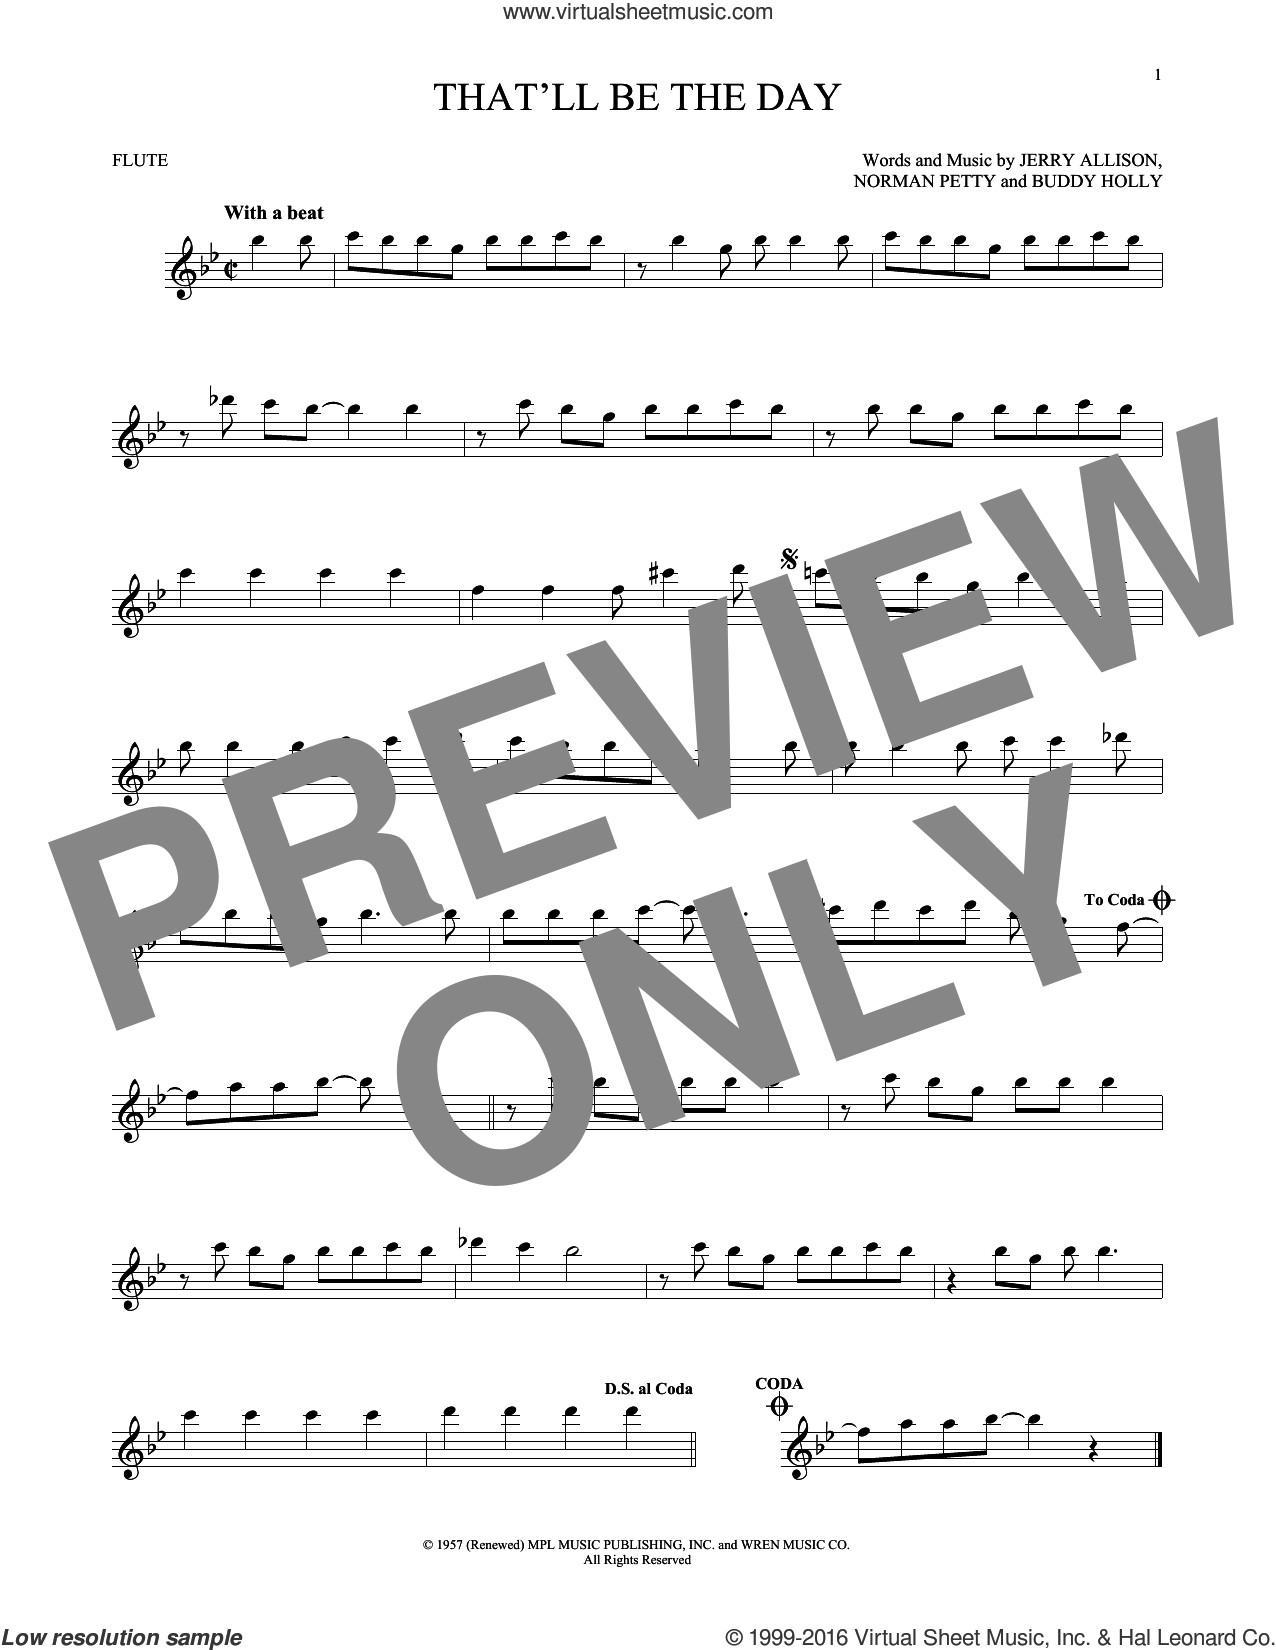 That'll Be The Day sheet music for flute solo by Norman Petty, Buddy Holly and Jerry Allison. Score Image Preview.